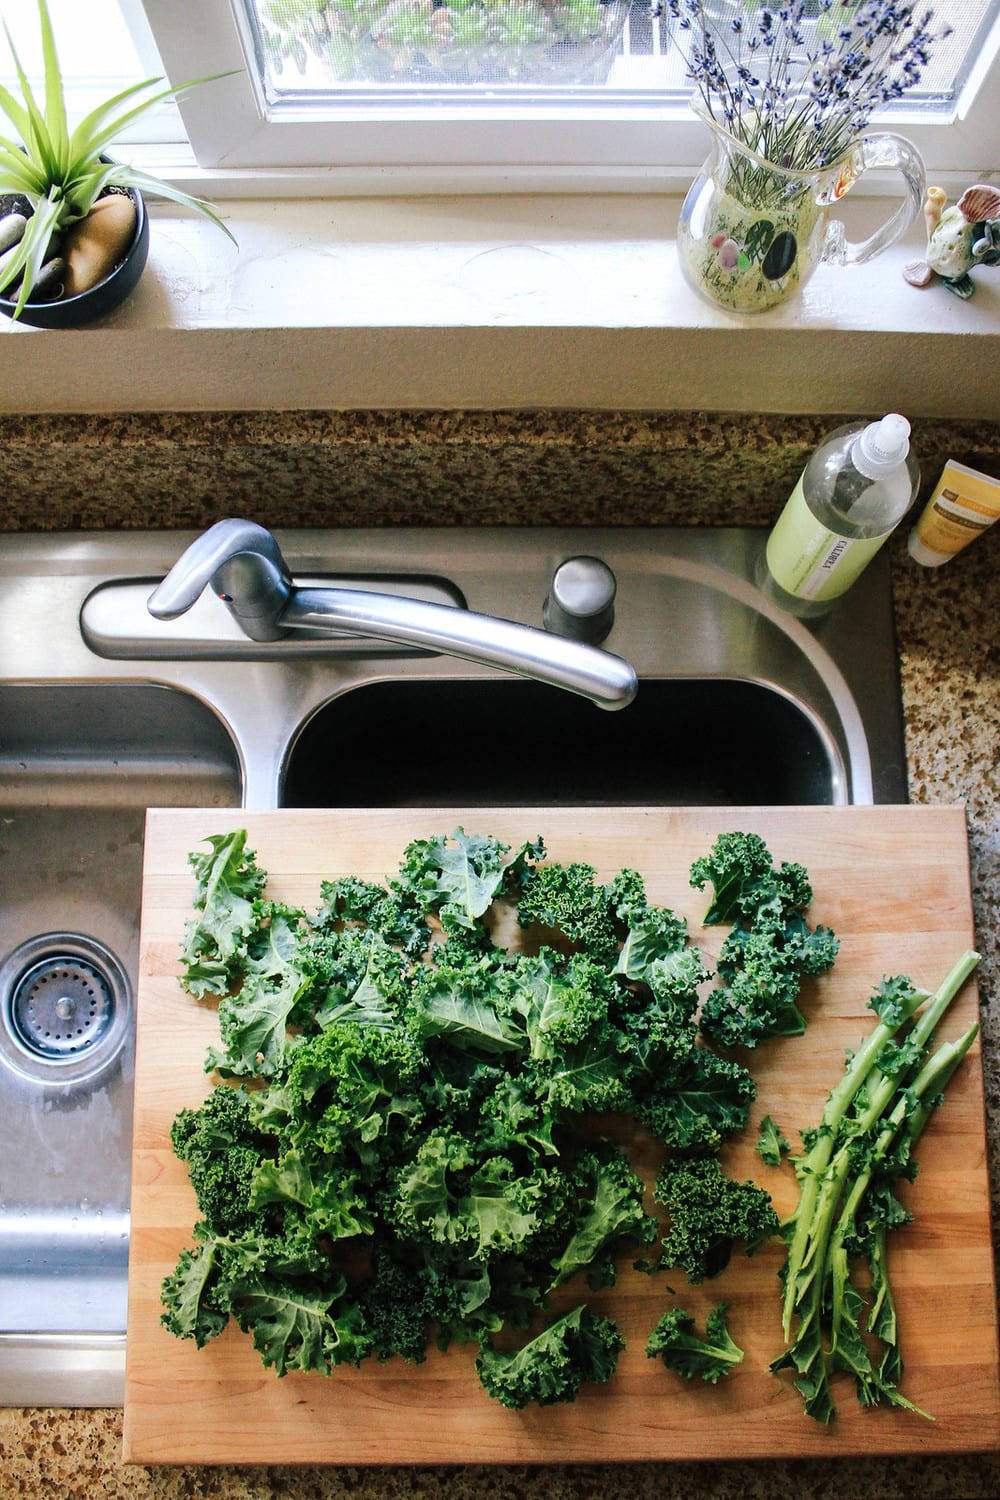 kale on cutting board over sink with stems removed